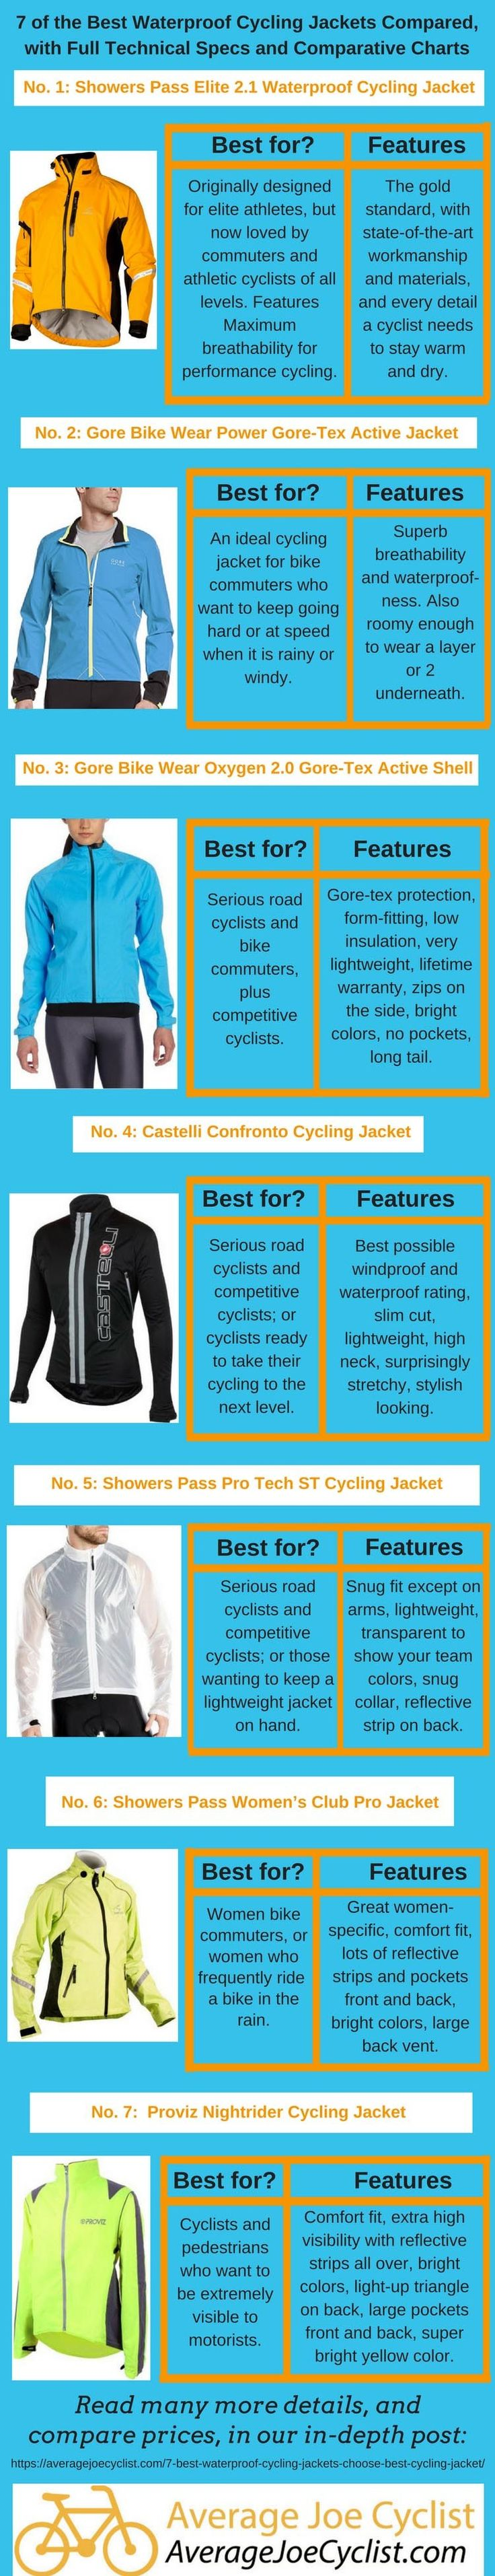 7 of the Best Waterproof Cycling Jackets